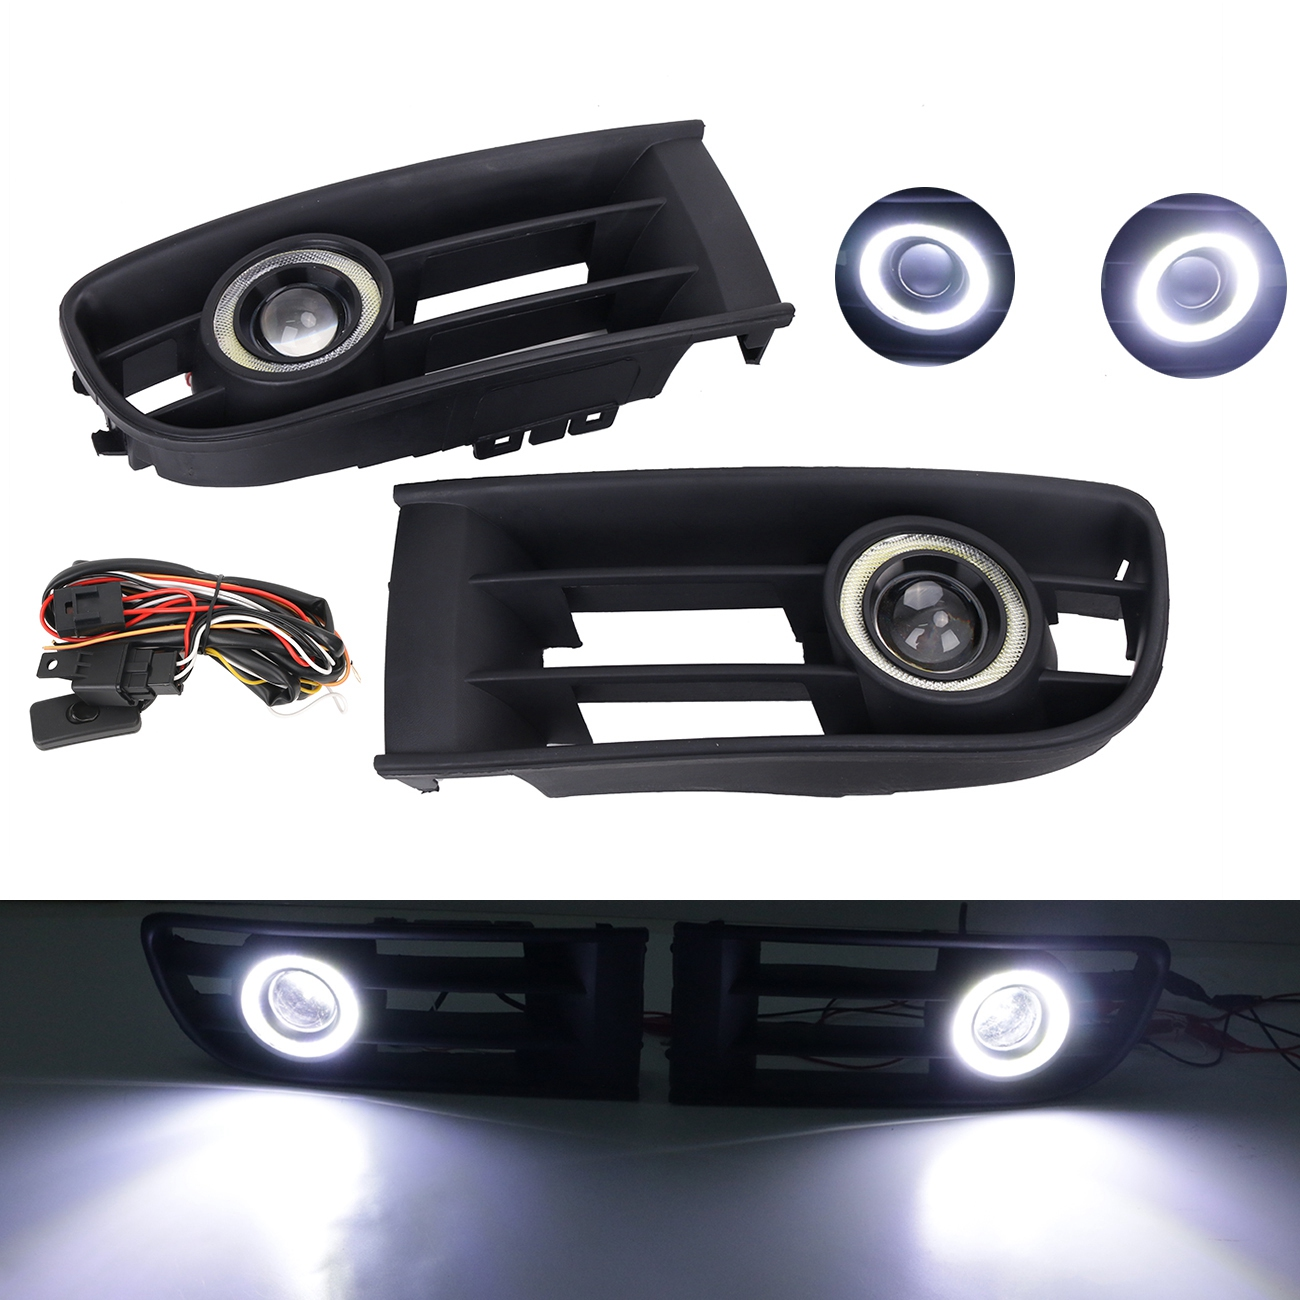 Front Bumper Fog Lamp Grille LED Convex lens Fog Light Angel Eyes For VW Polo 2001 2002 2003 2004 2005 DRL Car Accessory #P364 wisengear front bumper grille fog light angel eyes led lamp with wiring switch kit for mitsubishi lancer 2008 2015 c 5